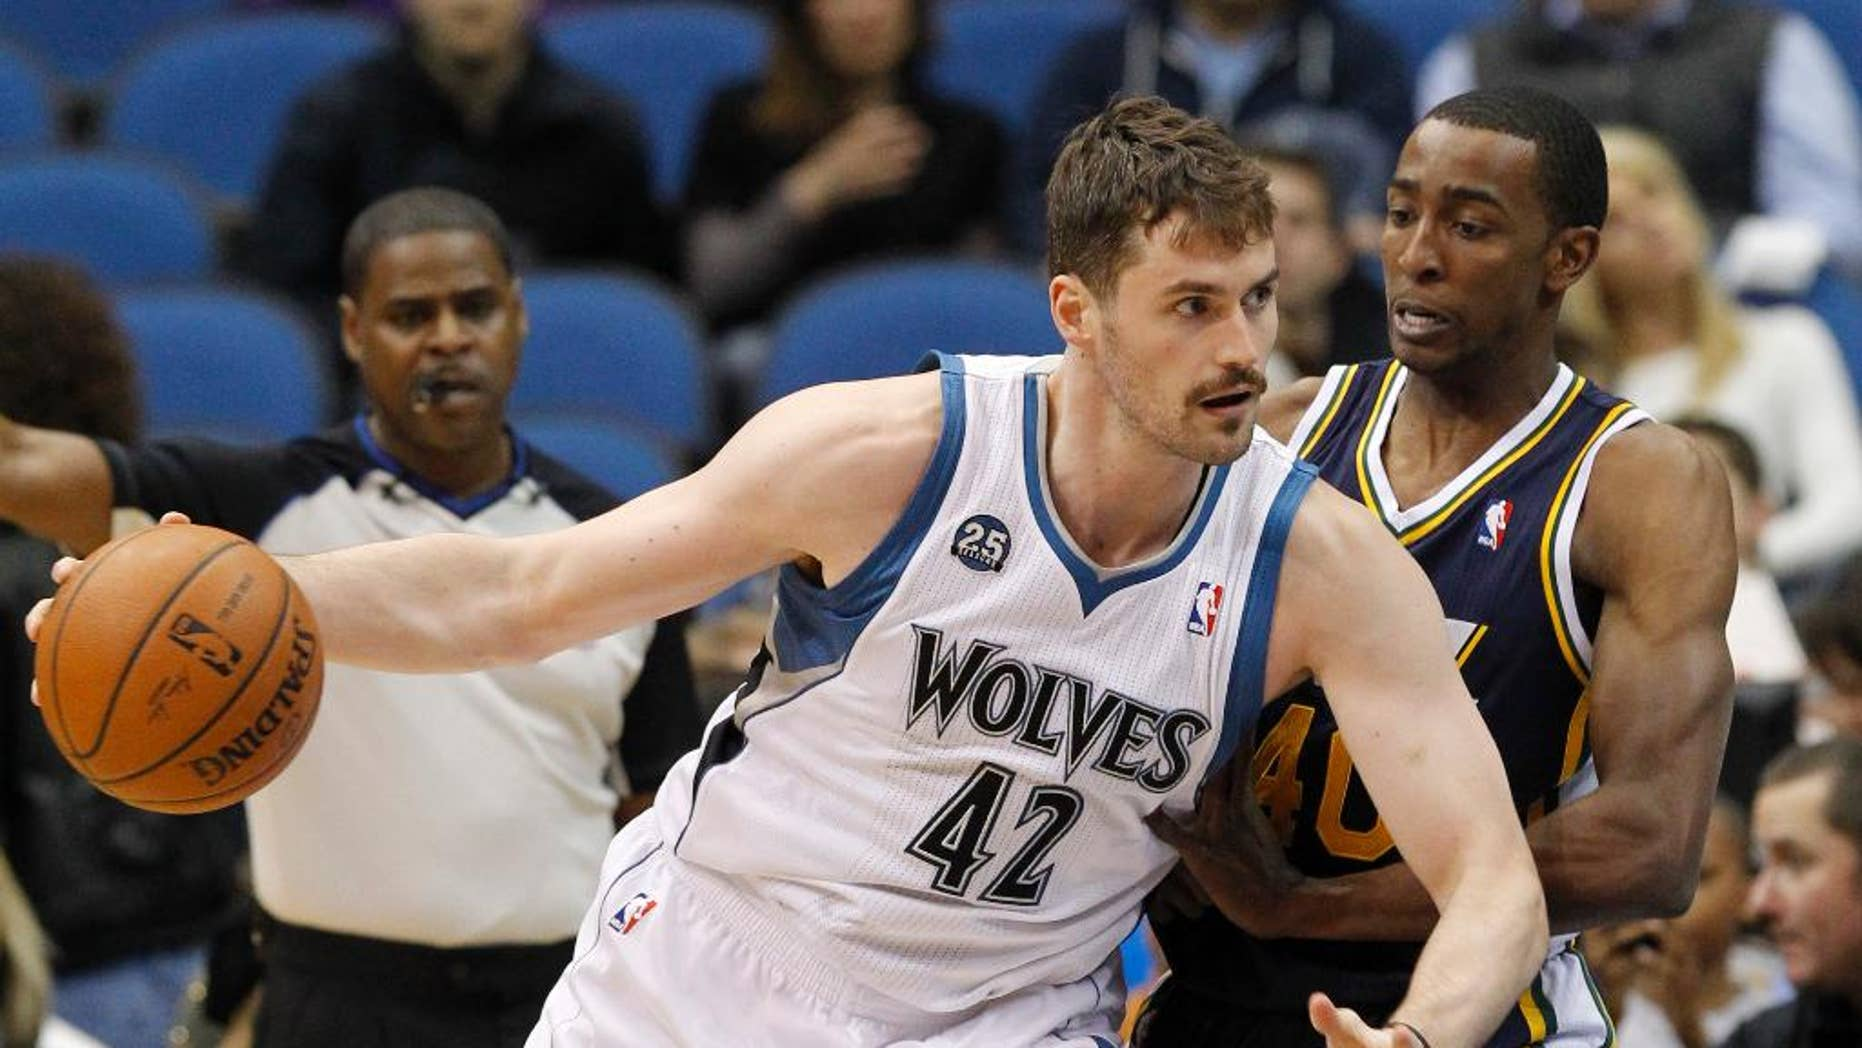 FILE - In this Wednesday, April 16, 2014, file photo, Minnesota Timberwolves forward Kevin Love (42) drives against Utah Jazz forward Jeremy Evans during the first quarter of an NBA basketball game in Minneapolis. Three-time NBA All-Star Love could hear his name called on draft night _ again. The Minnesota Timberwolves big man headlines a list of veteran NBA players who could have a major influence on how the draft unfolds, on Thursday, June 26, 2014. (AP Photo/Ann Heisenfelt, File)